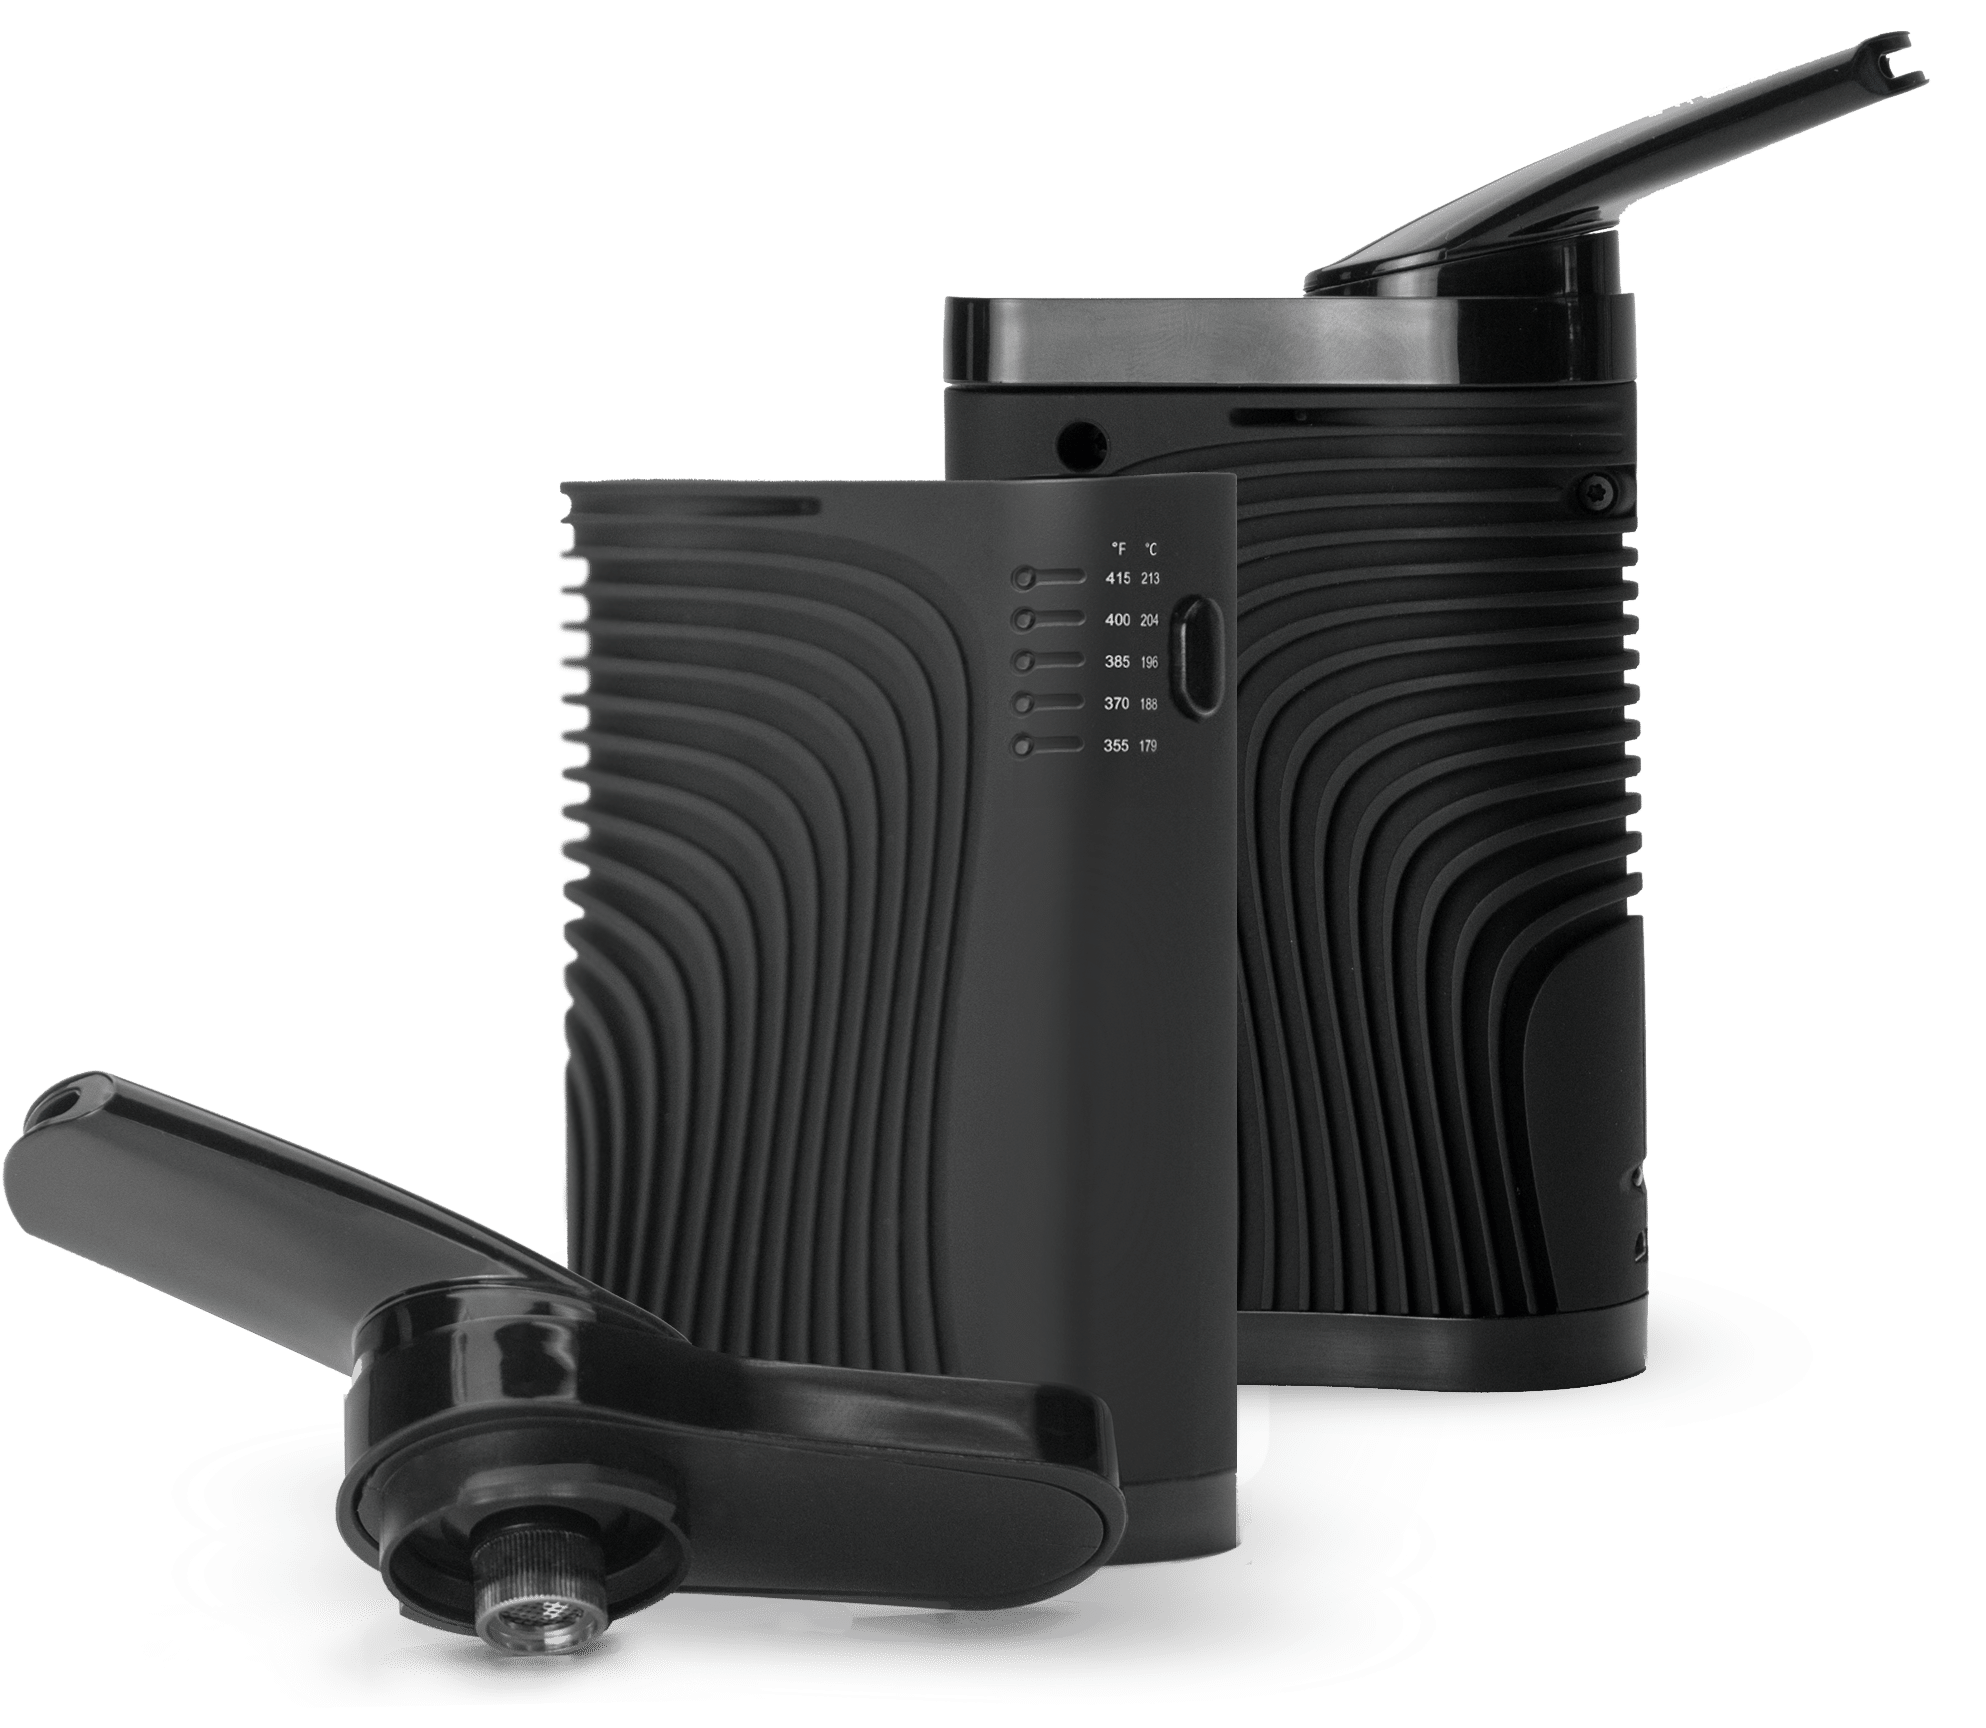 Two Standing Tera Vaporizers with One's Mouthpiece Removed and no Background